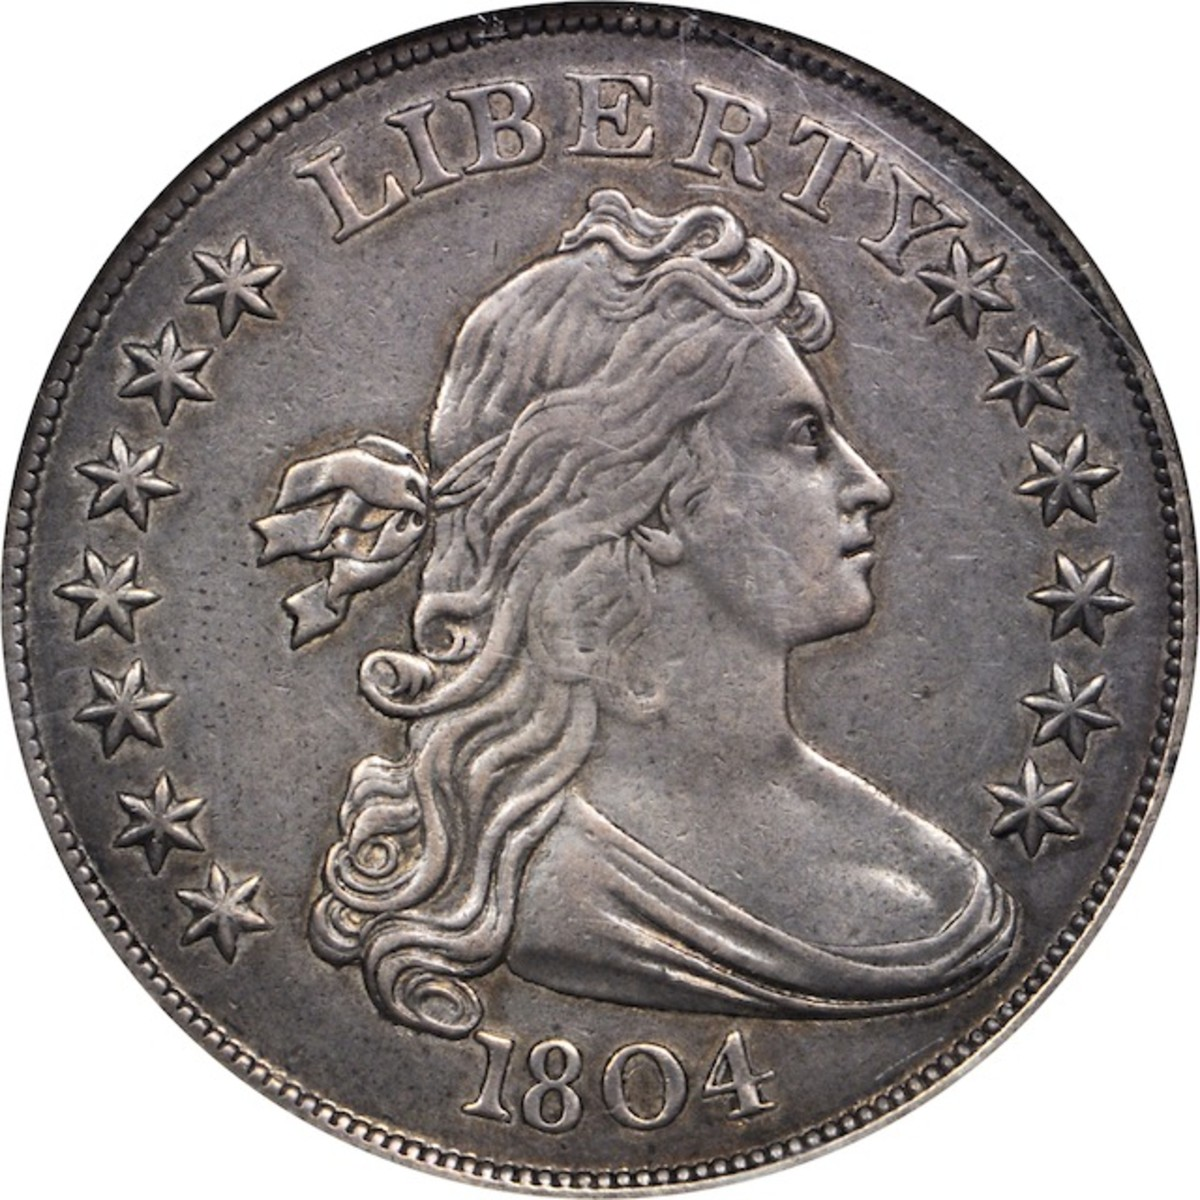 Obverse of the class-III 1804 silver dollar